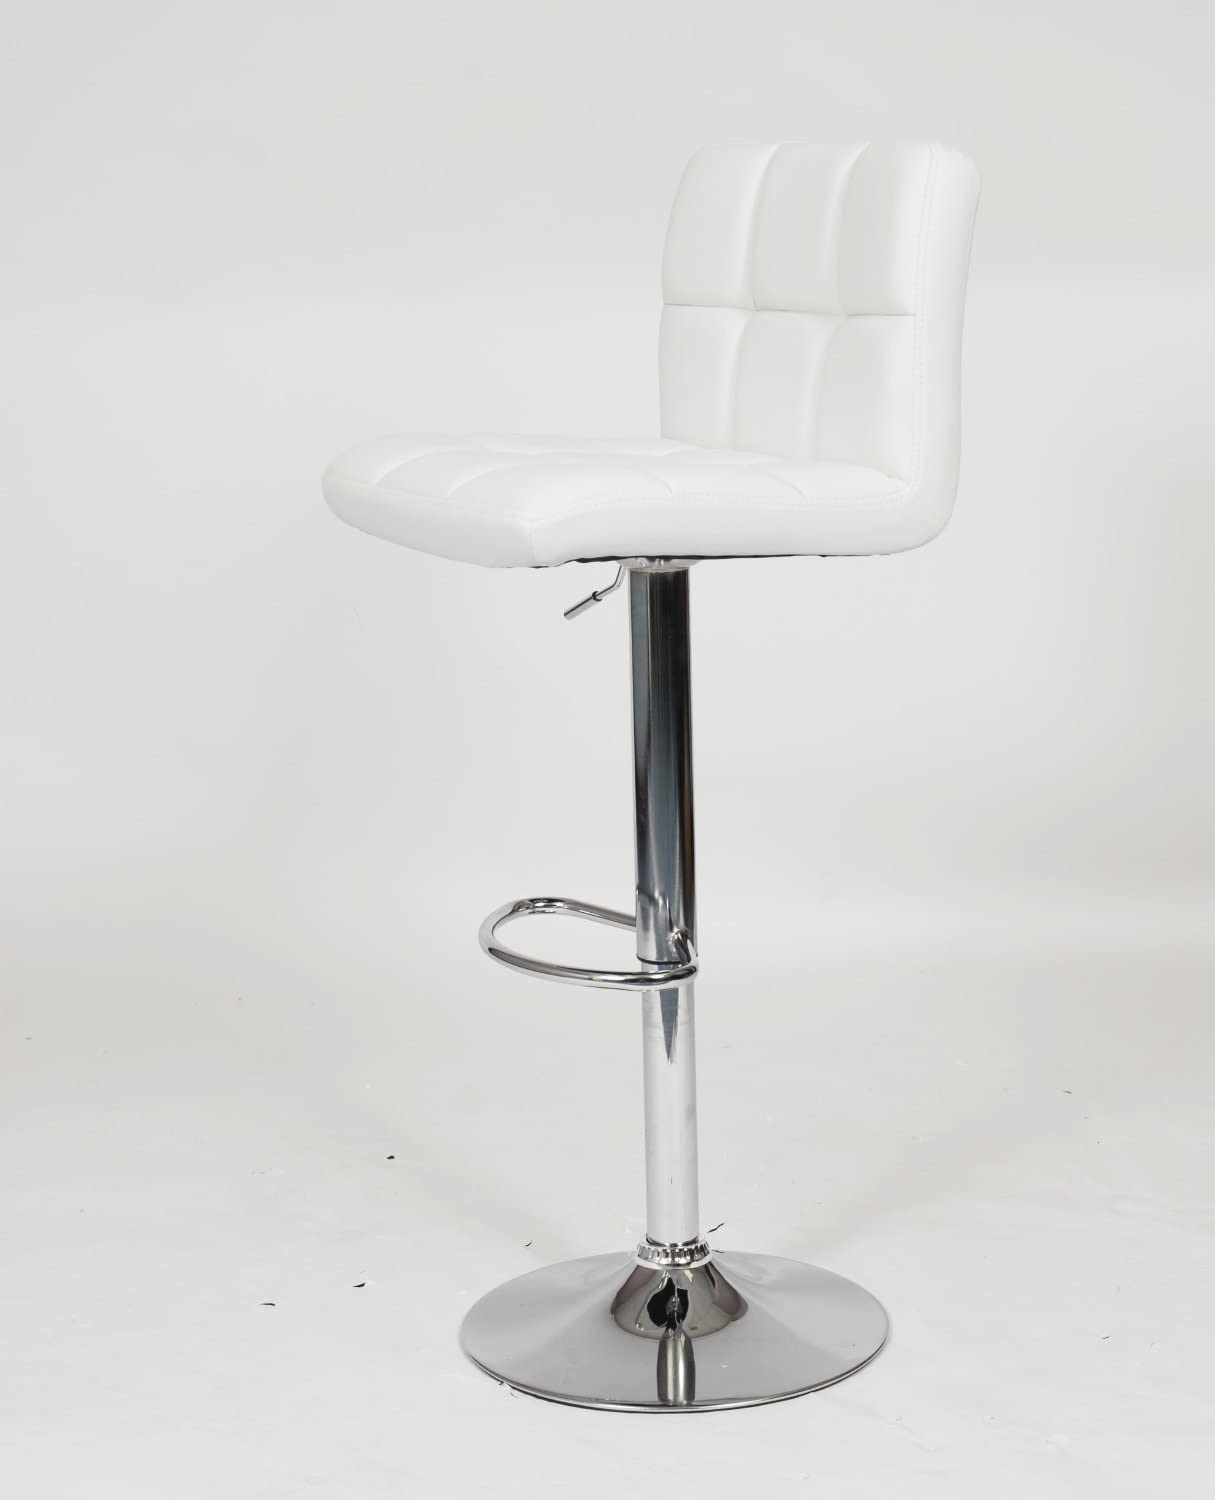 jersey seating PU Leather Hydraulic Lift Adjustable Counter Bar Stool Dining Chair White 150 Made